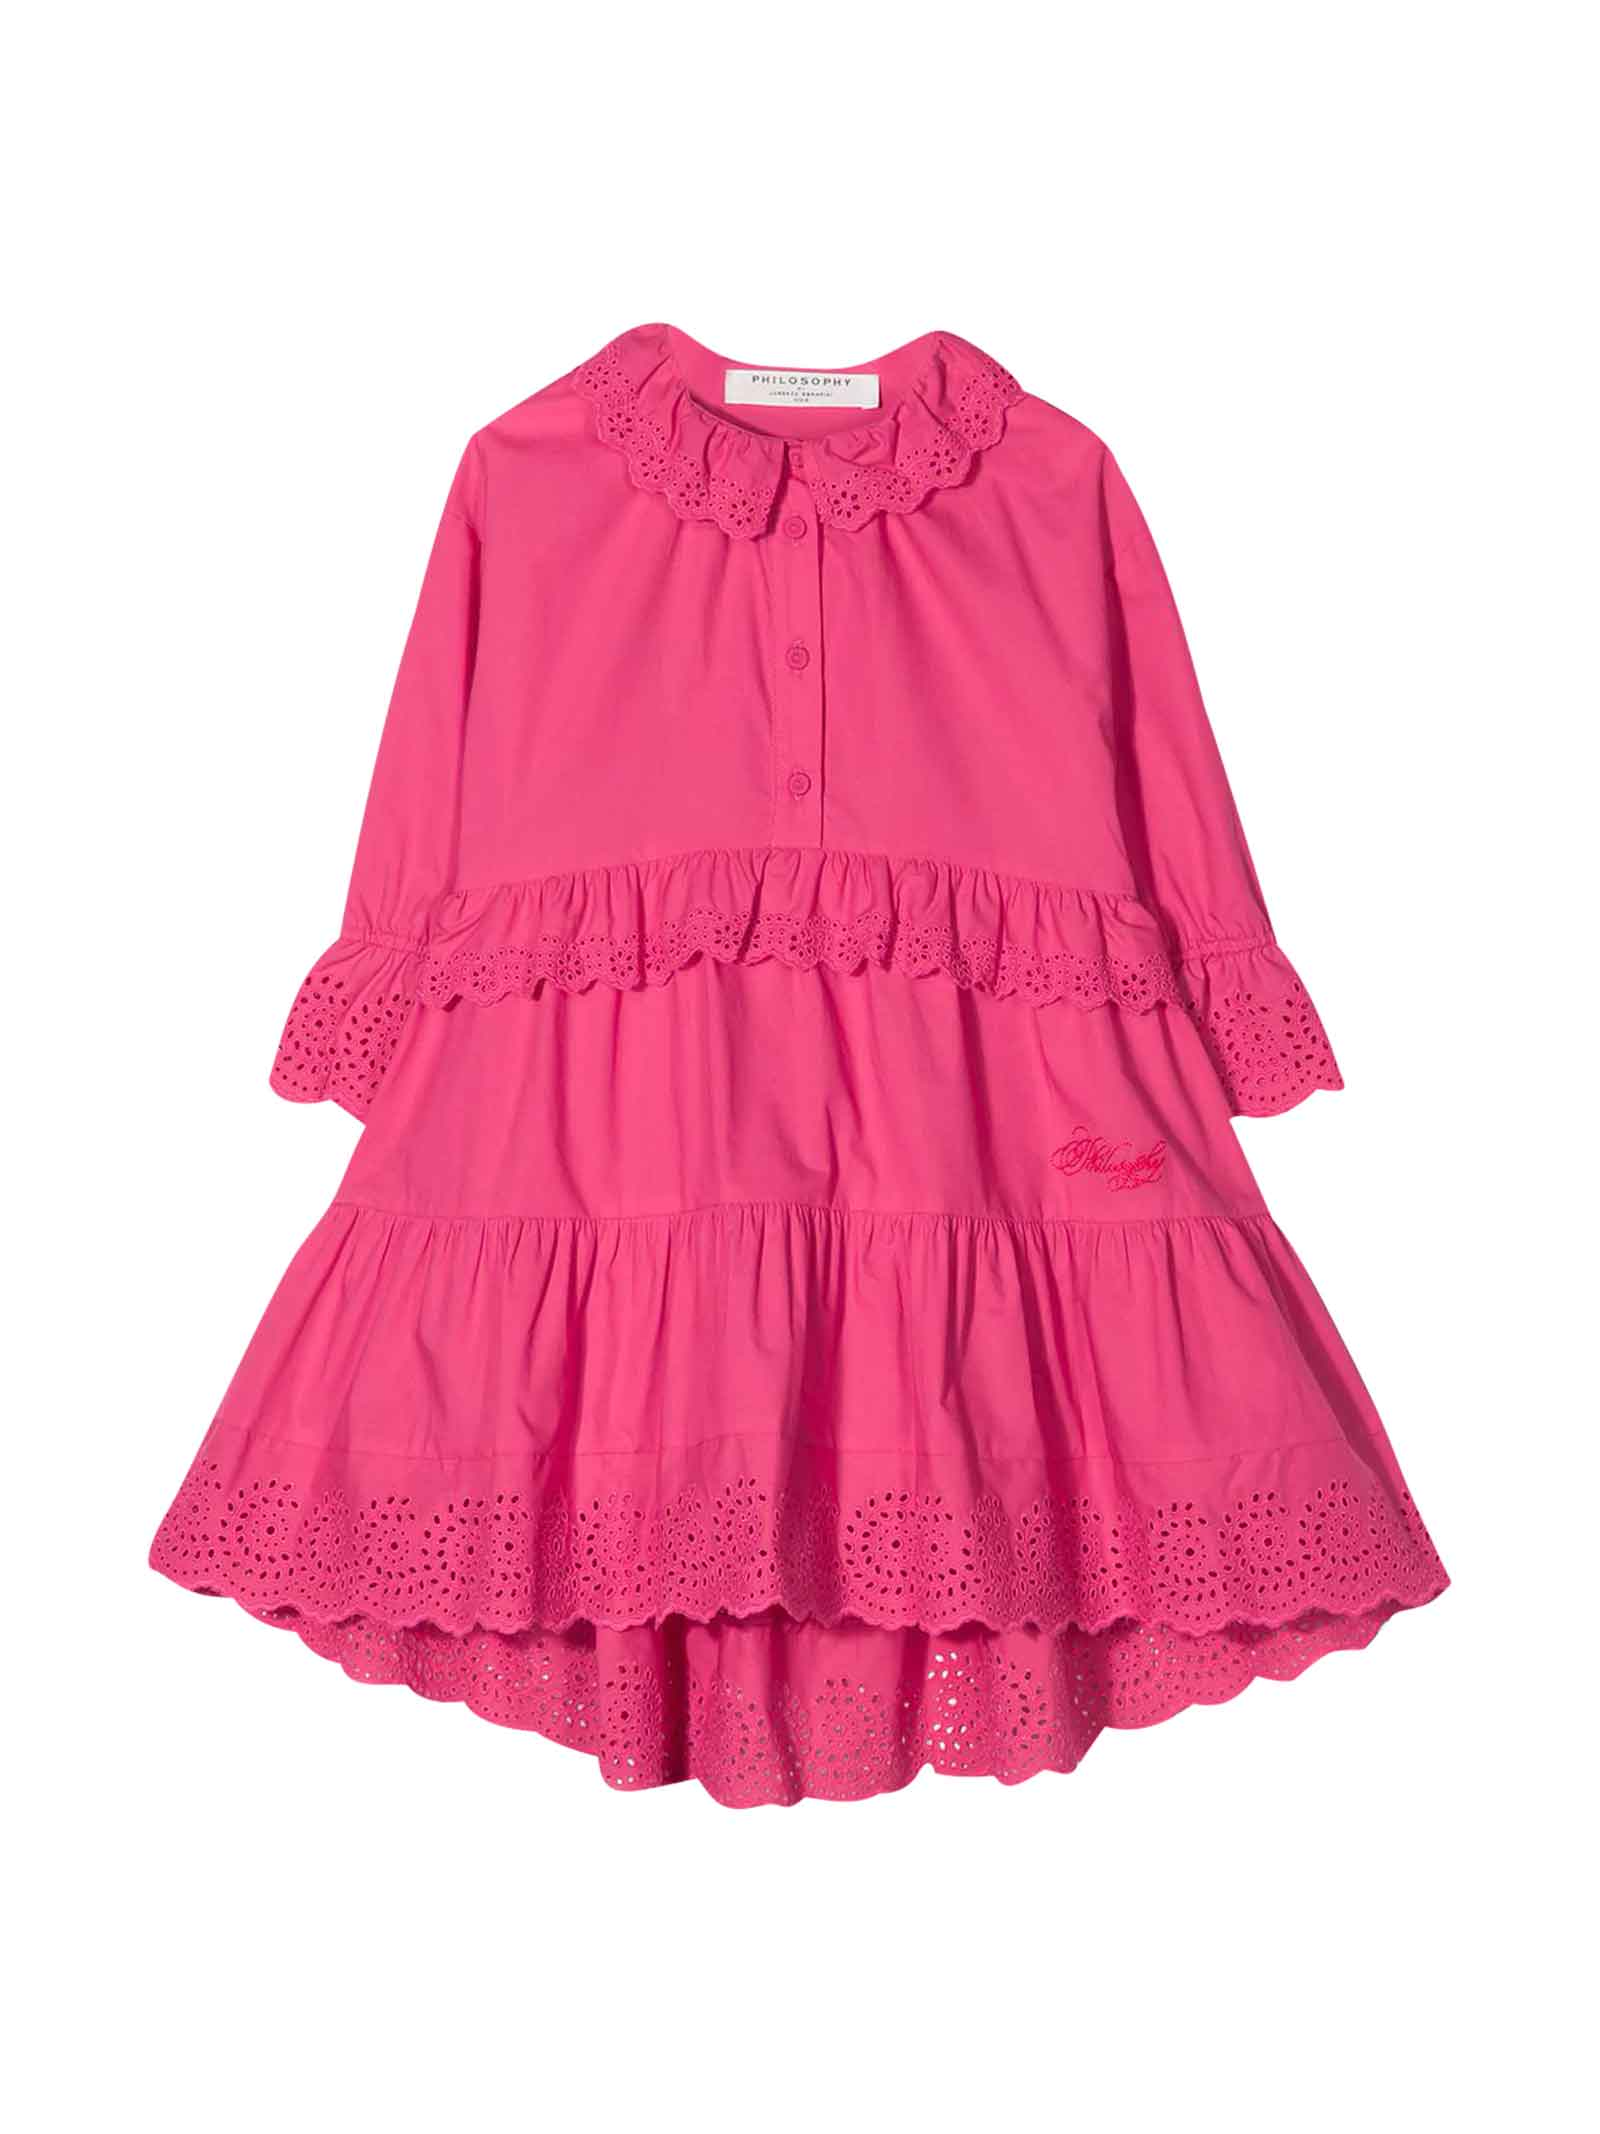 Buy Philosophy di Lorenzo Serafini Kids Fuchsia Teen Dress With Ruffles online, shop Philosophy di Lorenzo Serafini Kids with free shipping